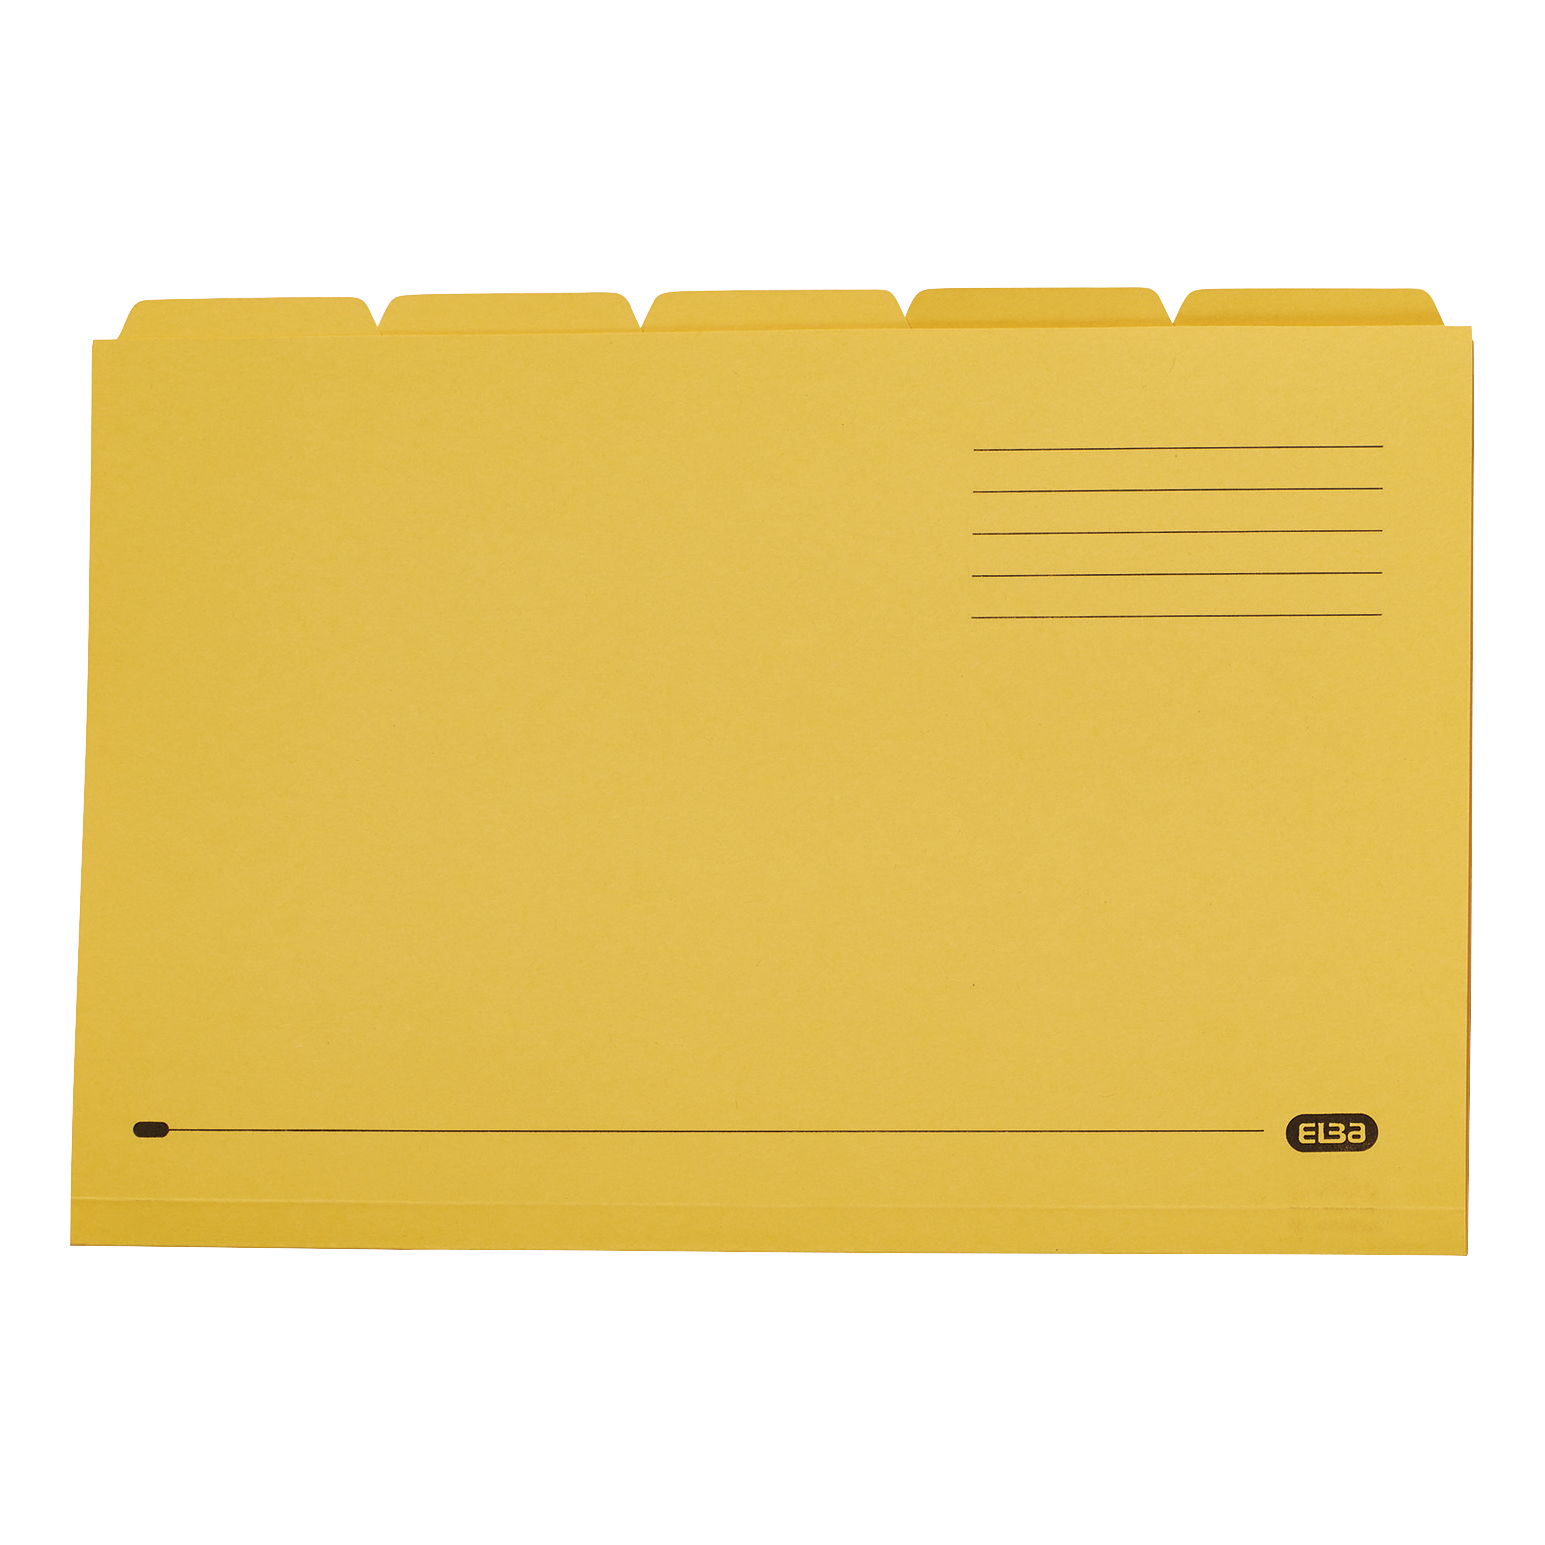 Elba Tabbed Folders Recycled Mediumweight 250gsm Manilla Set of 5 Foolscap Yellow Ref 100090237 [Pack 20]